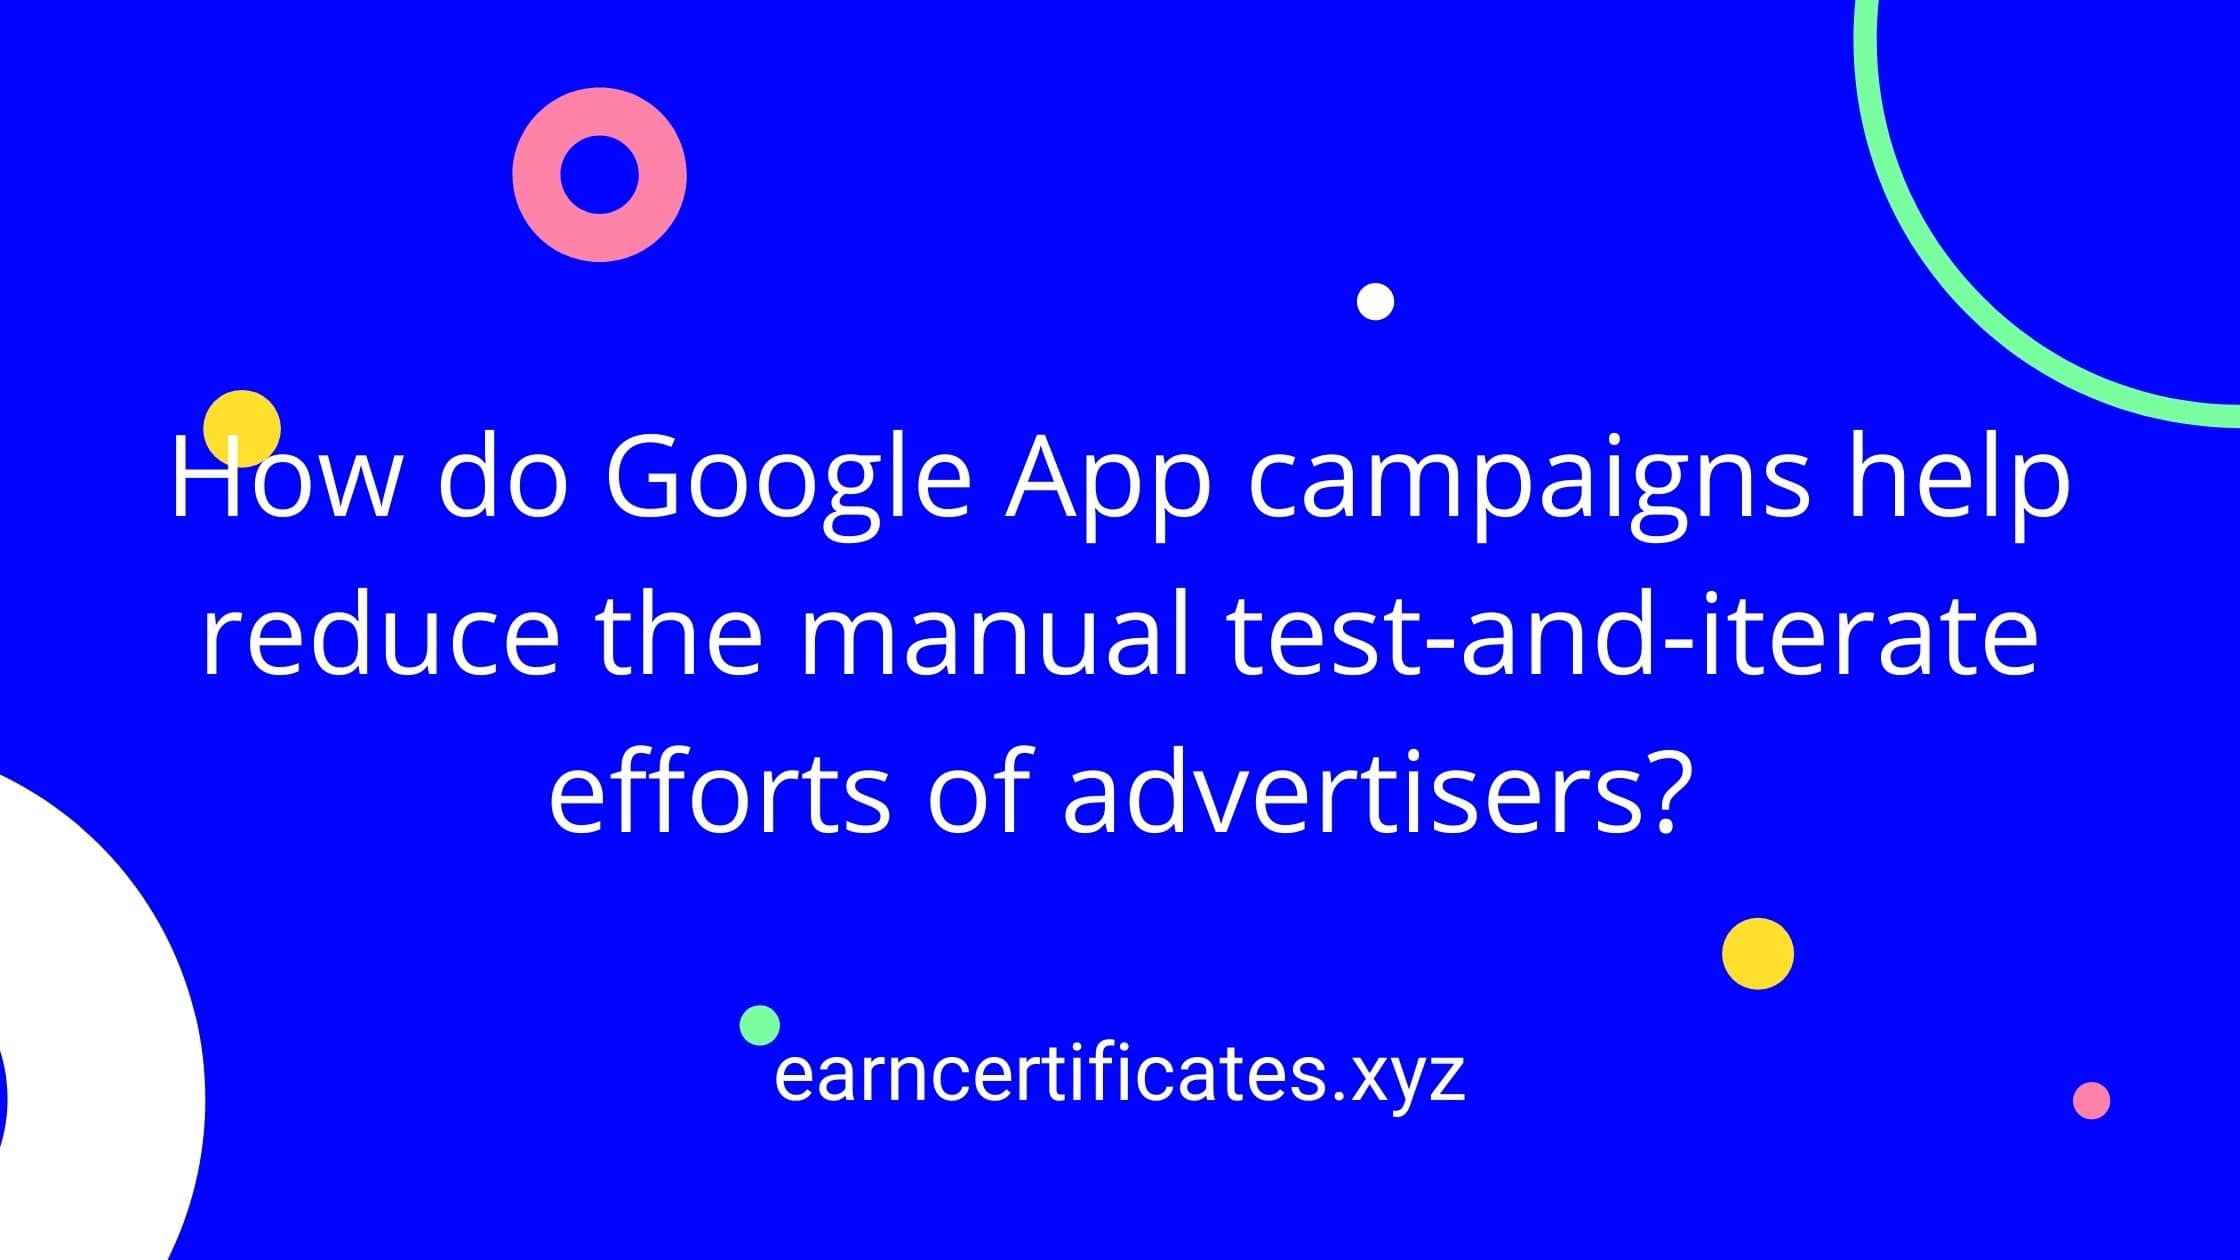 How do Google App campaigns help reduce the manual test-and-iterate efforts of advertisers?